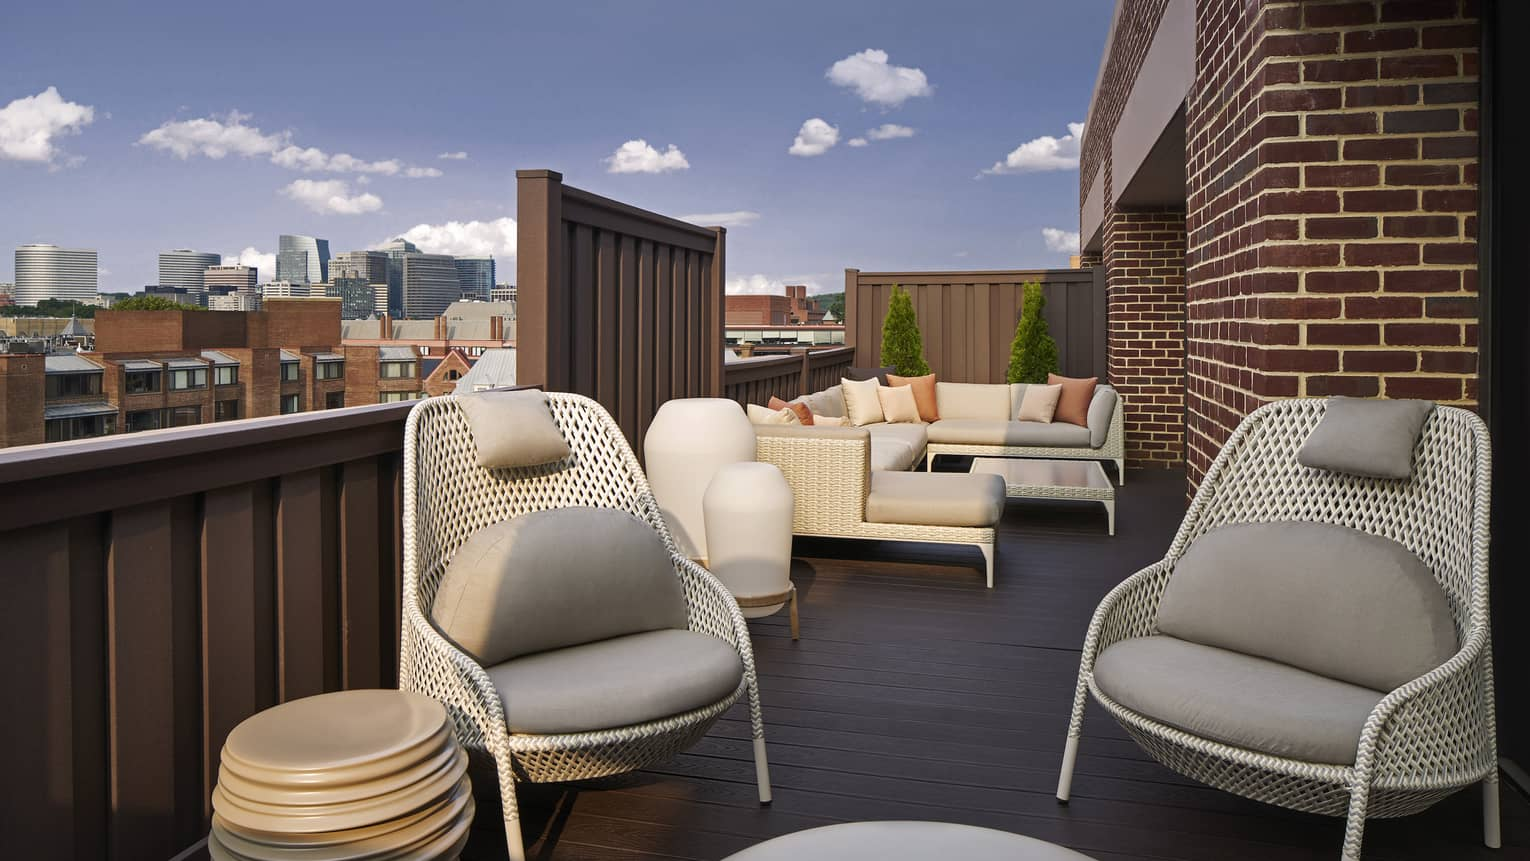 A large, outdoor terrace with cozy chairs and couches